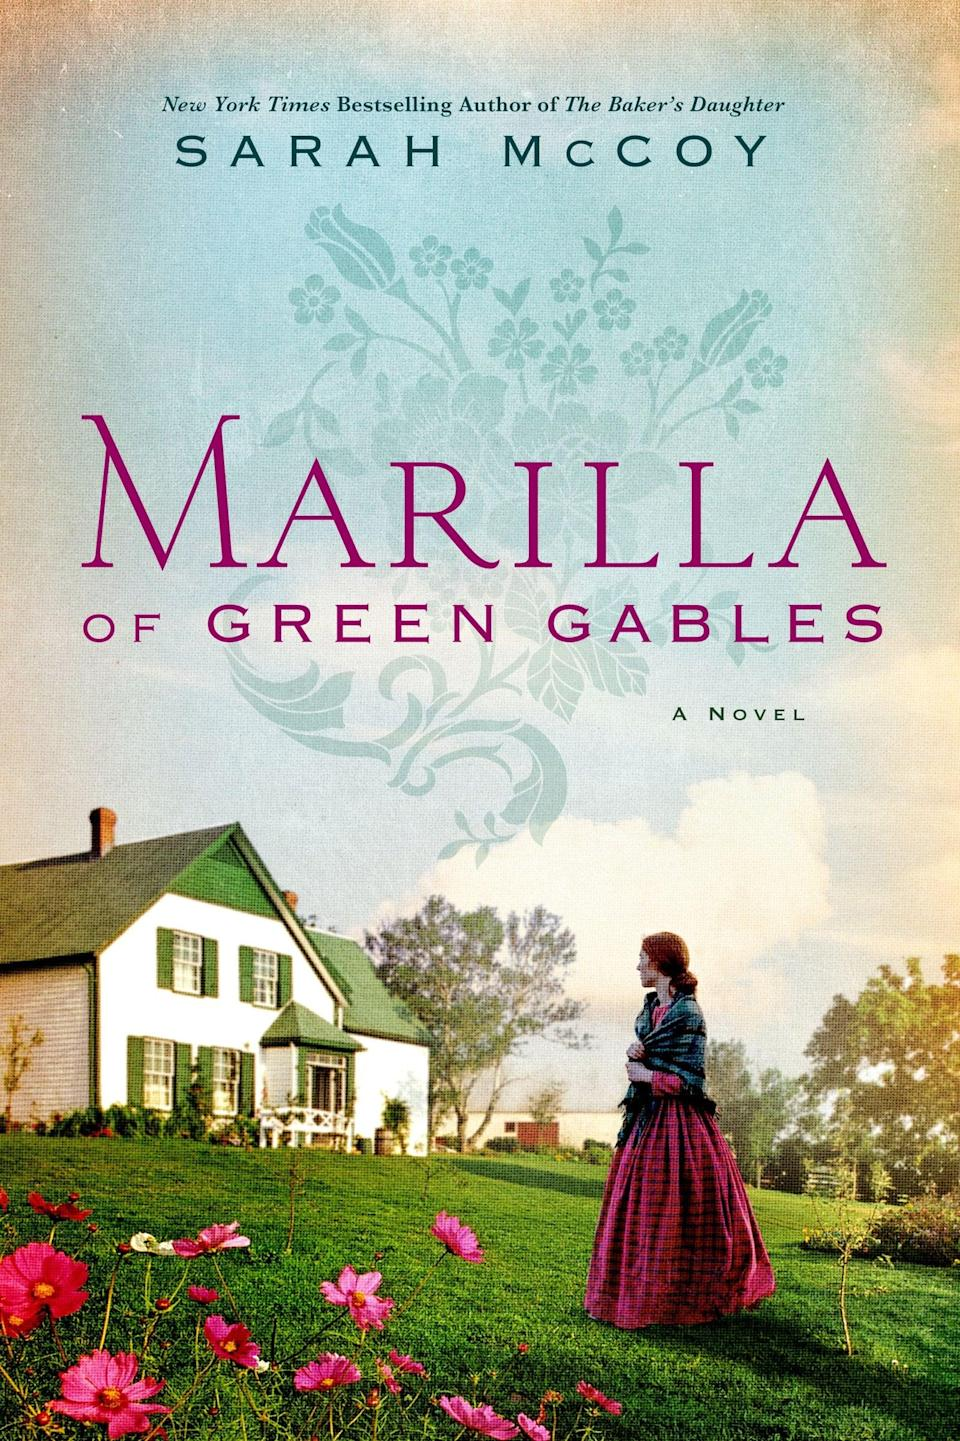 <p>Much like the <strong>Anne of Green Gables</strong> series its based off of, Sarah McCoy's gentle-spirited <span><strong>Marilla of Green Gables</strong></span> spans the seasons. However, there's an overall coziness to the story of Marilla Cuthbert's life that makes the book feel like a warm hug throughout. Marilla's life on Prince Edward Island in the 19th Century is beautifully rendered, as are her adventures beyond the small town of Avonlea.</p>